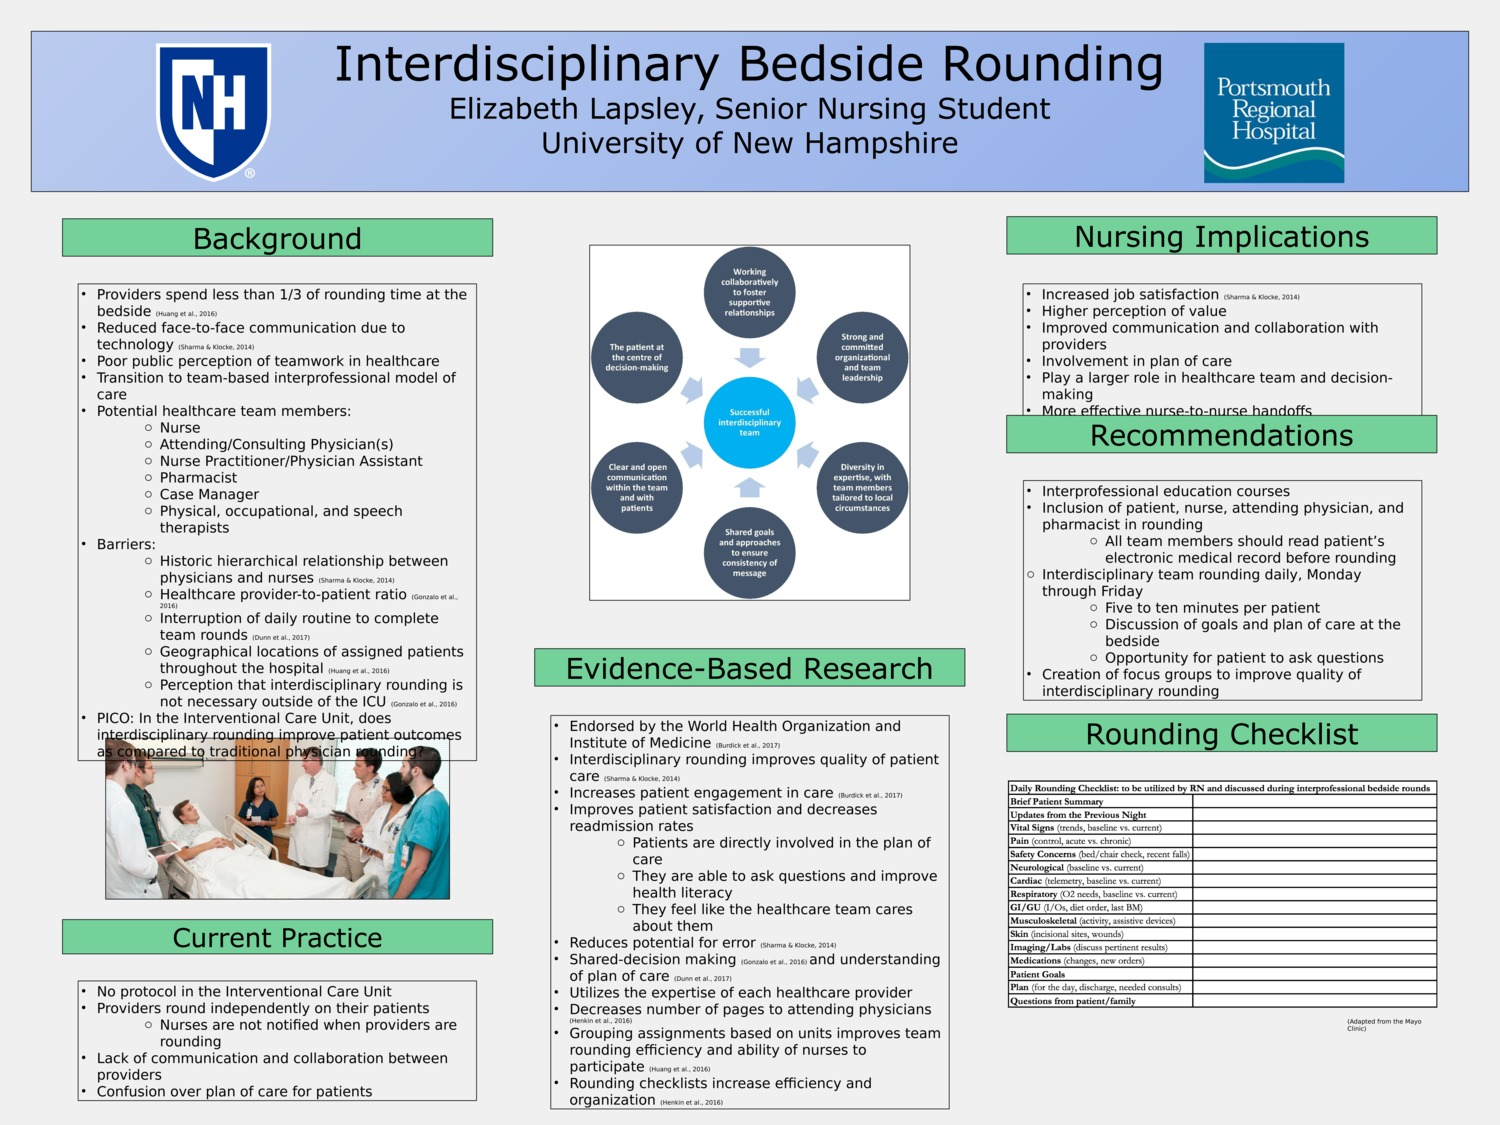 Interdisciplinary Bedside Rounding by ehl2002